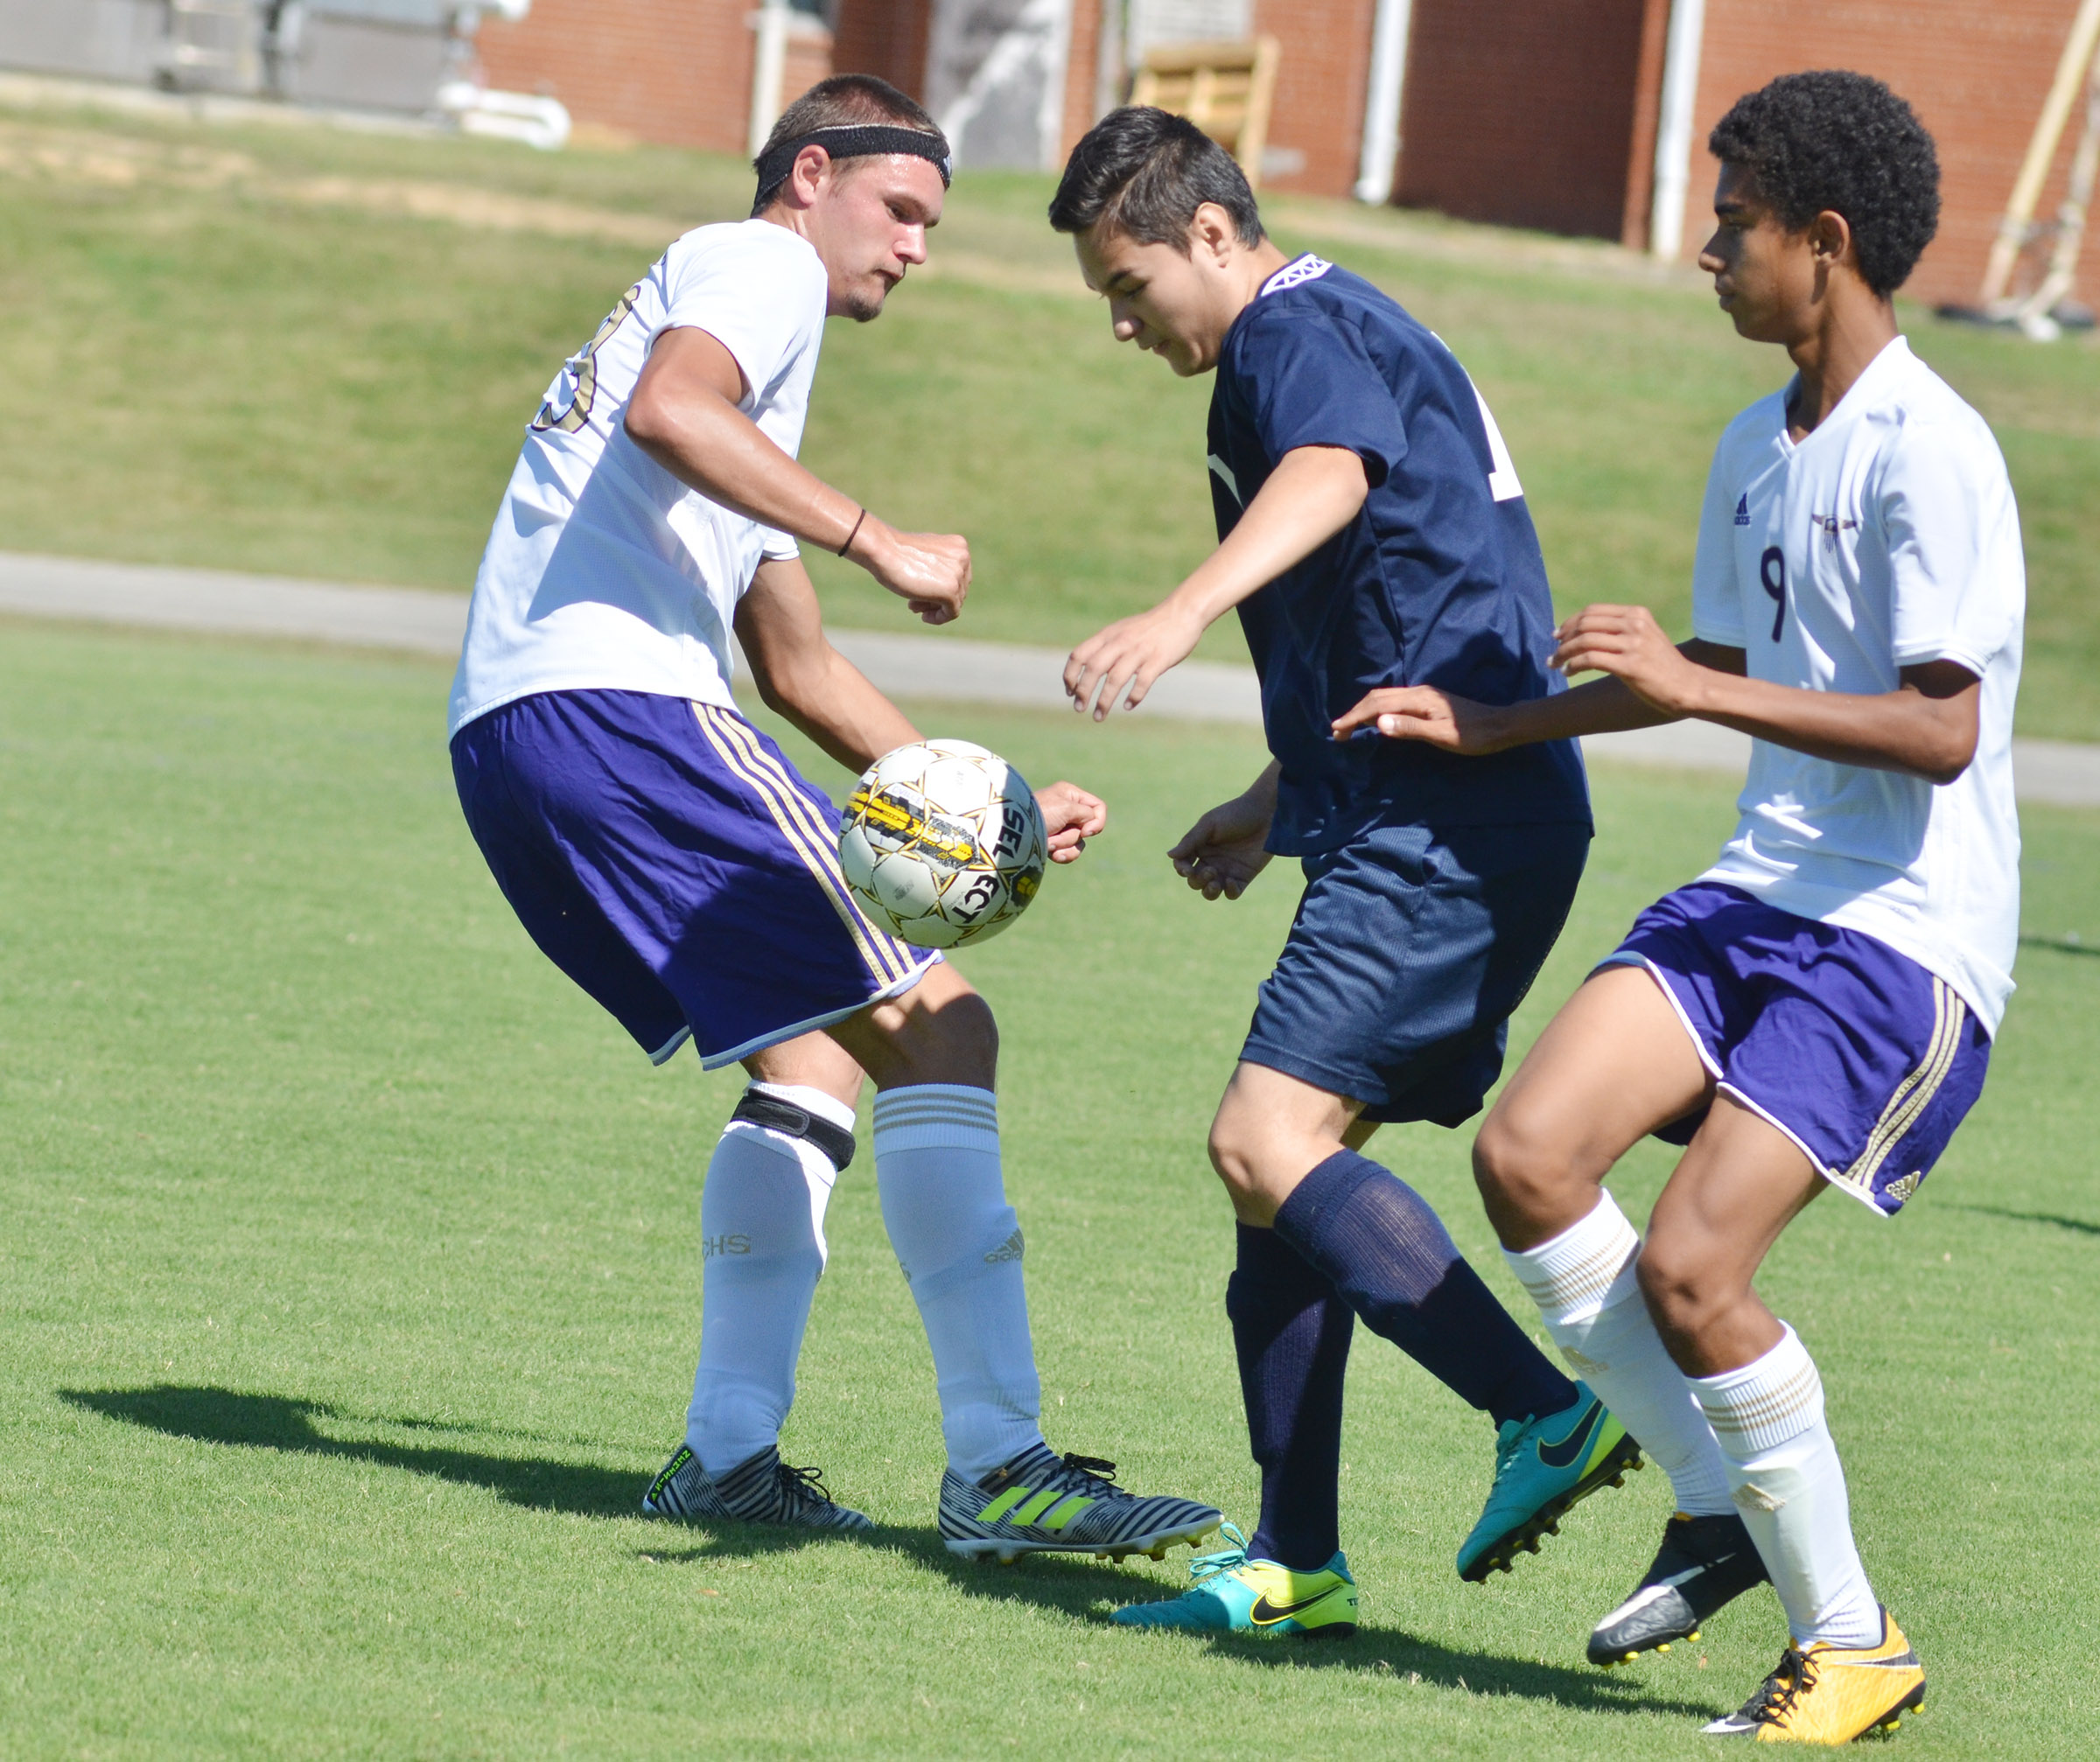 CHS senior Logan Cole, at left, and sophomore David Silva play defense.